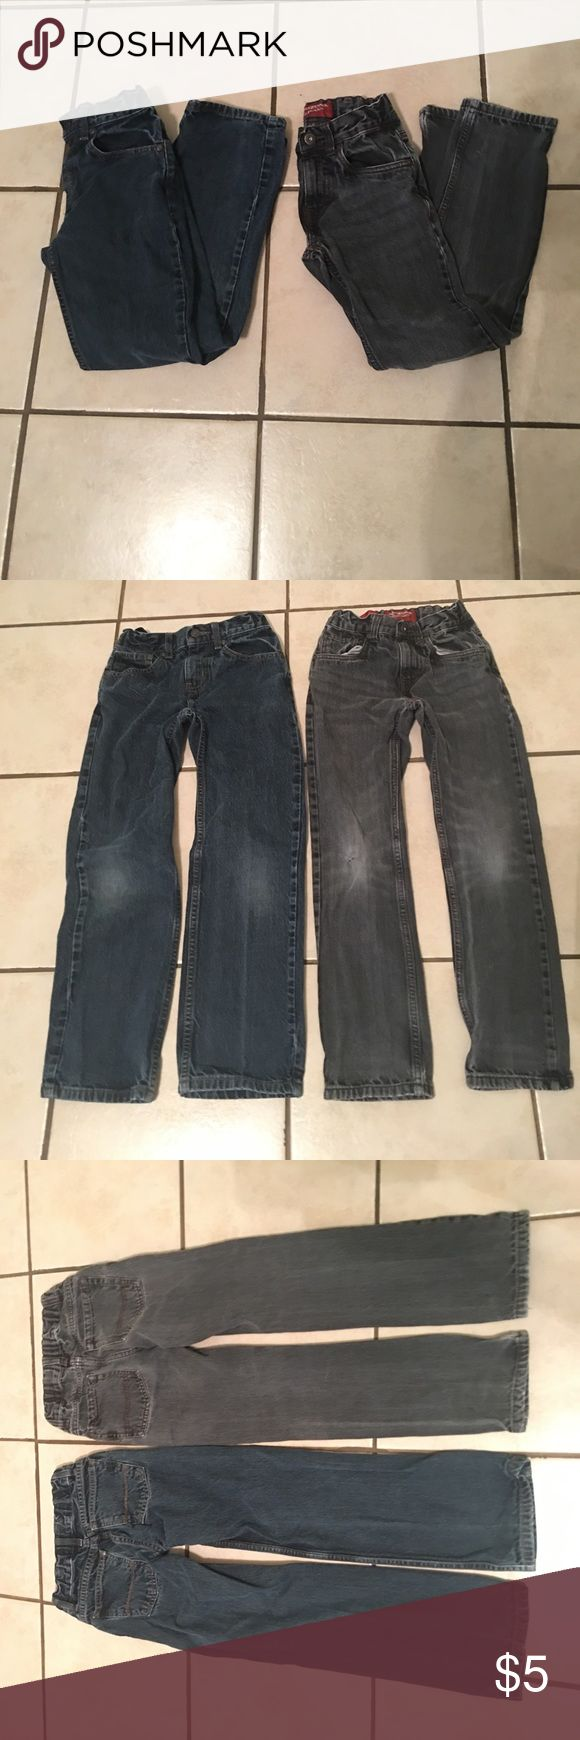 Boys set of jeans Set of boys Arizona jeans. Both are size ten and the blue ones are the relaxed slim fit and the gray jeans are the straight slim fit. Both feature an adjustable waist band to help the jeans fit better. Arizona Jean Company Bottoms Jeans